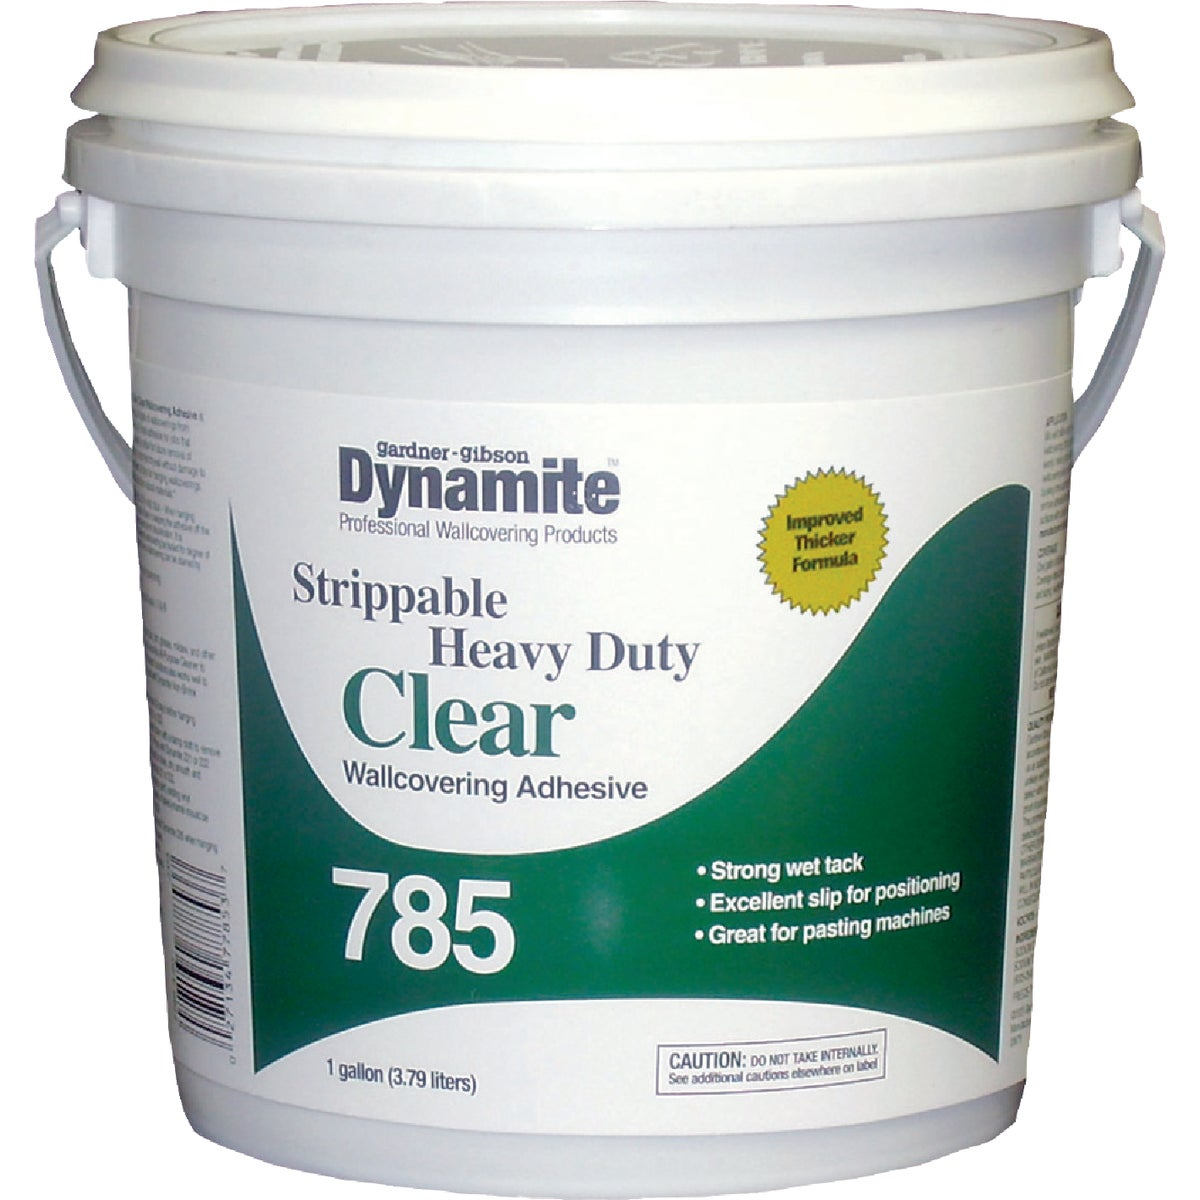 CLR STRIPPABLE ADHESIVE